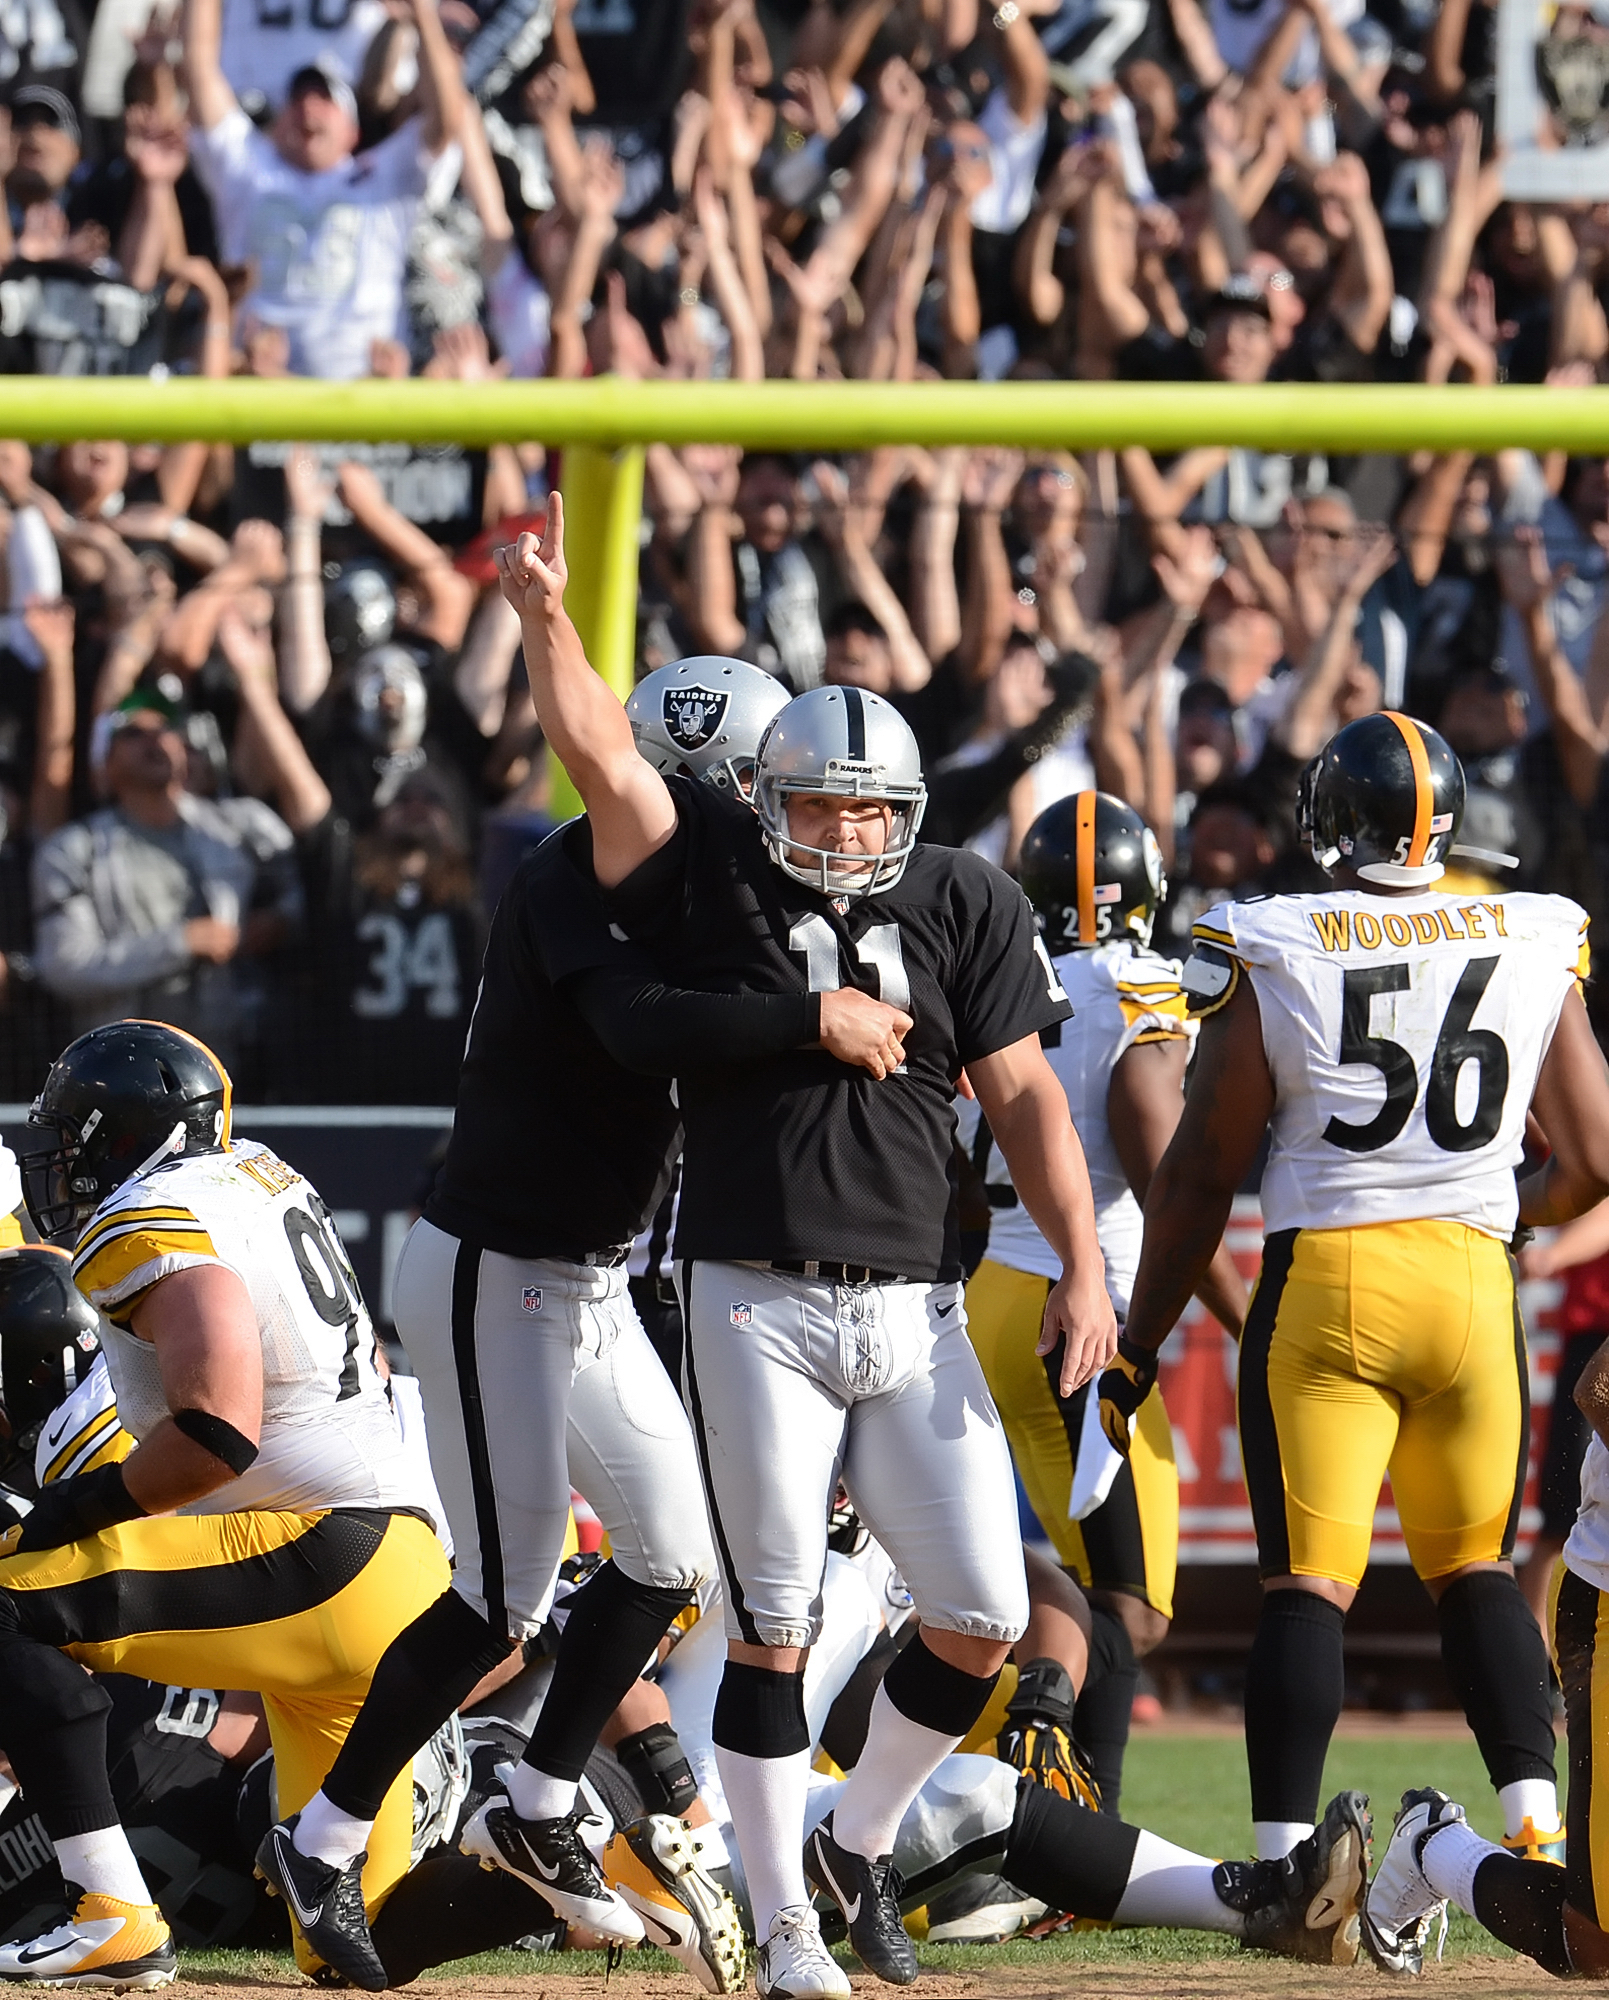 Game 7 matchup: Steelers vs. Raiders